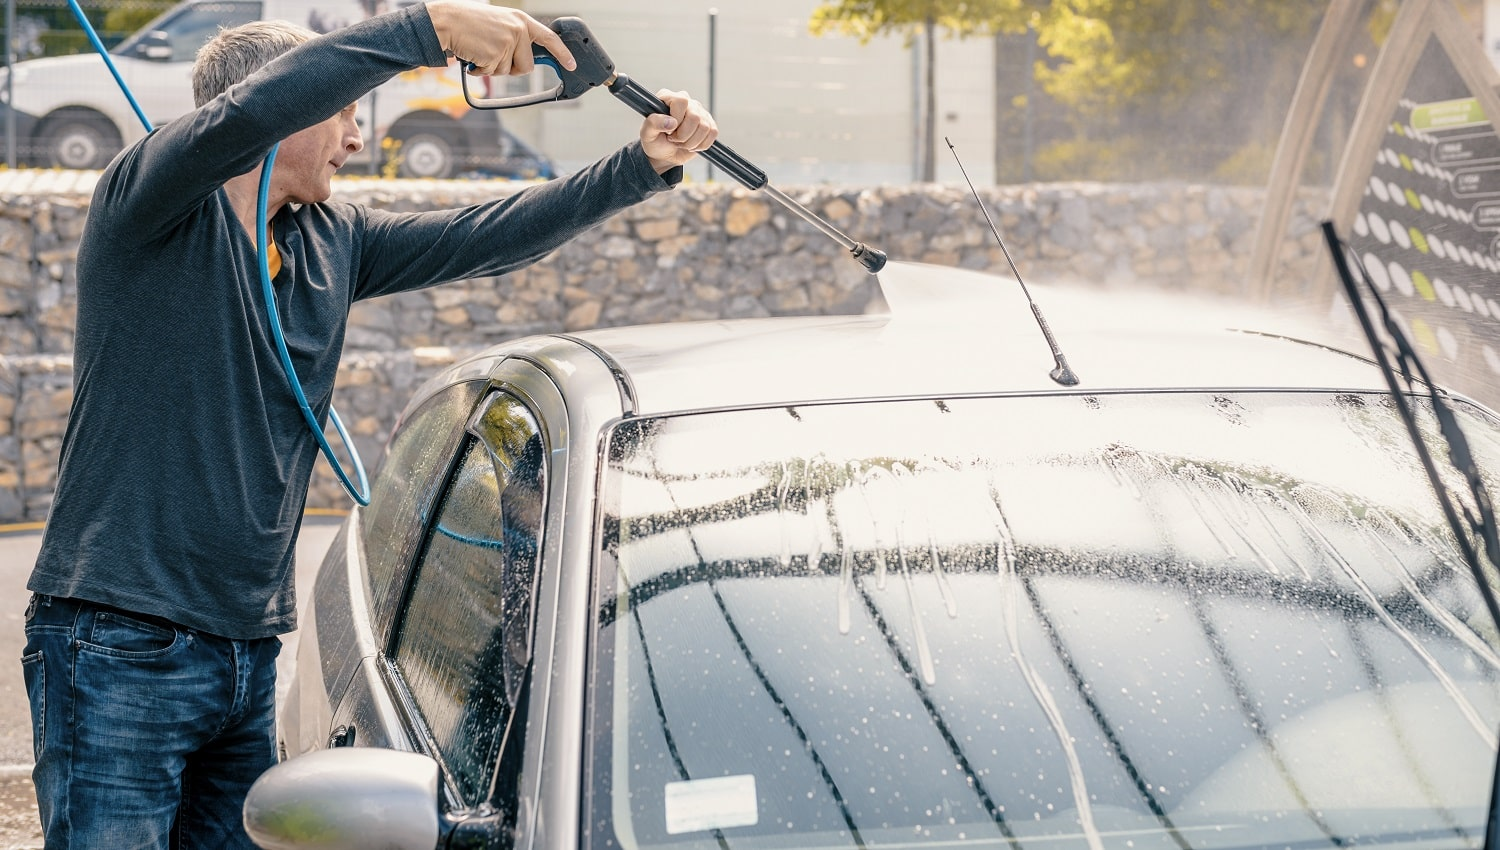 Man washing his car with using a high pressure water jet. man washing his car with compression water. Man washing his car in a self-service car wash station